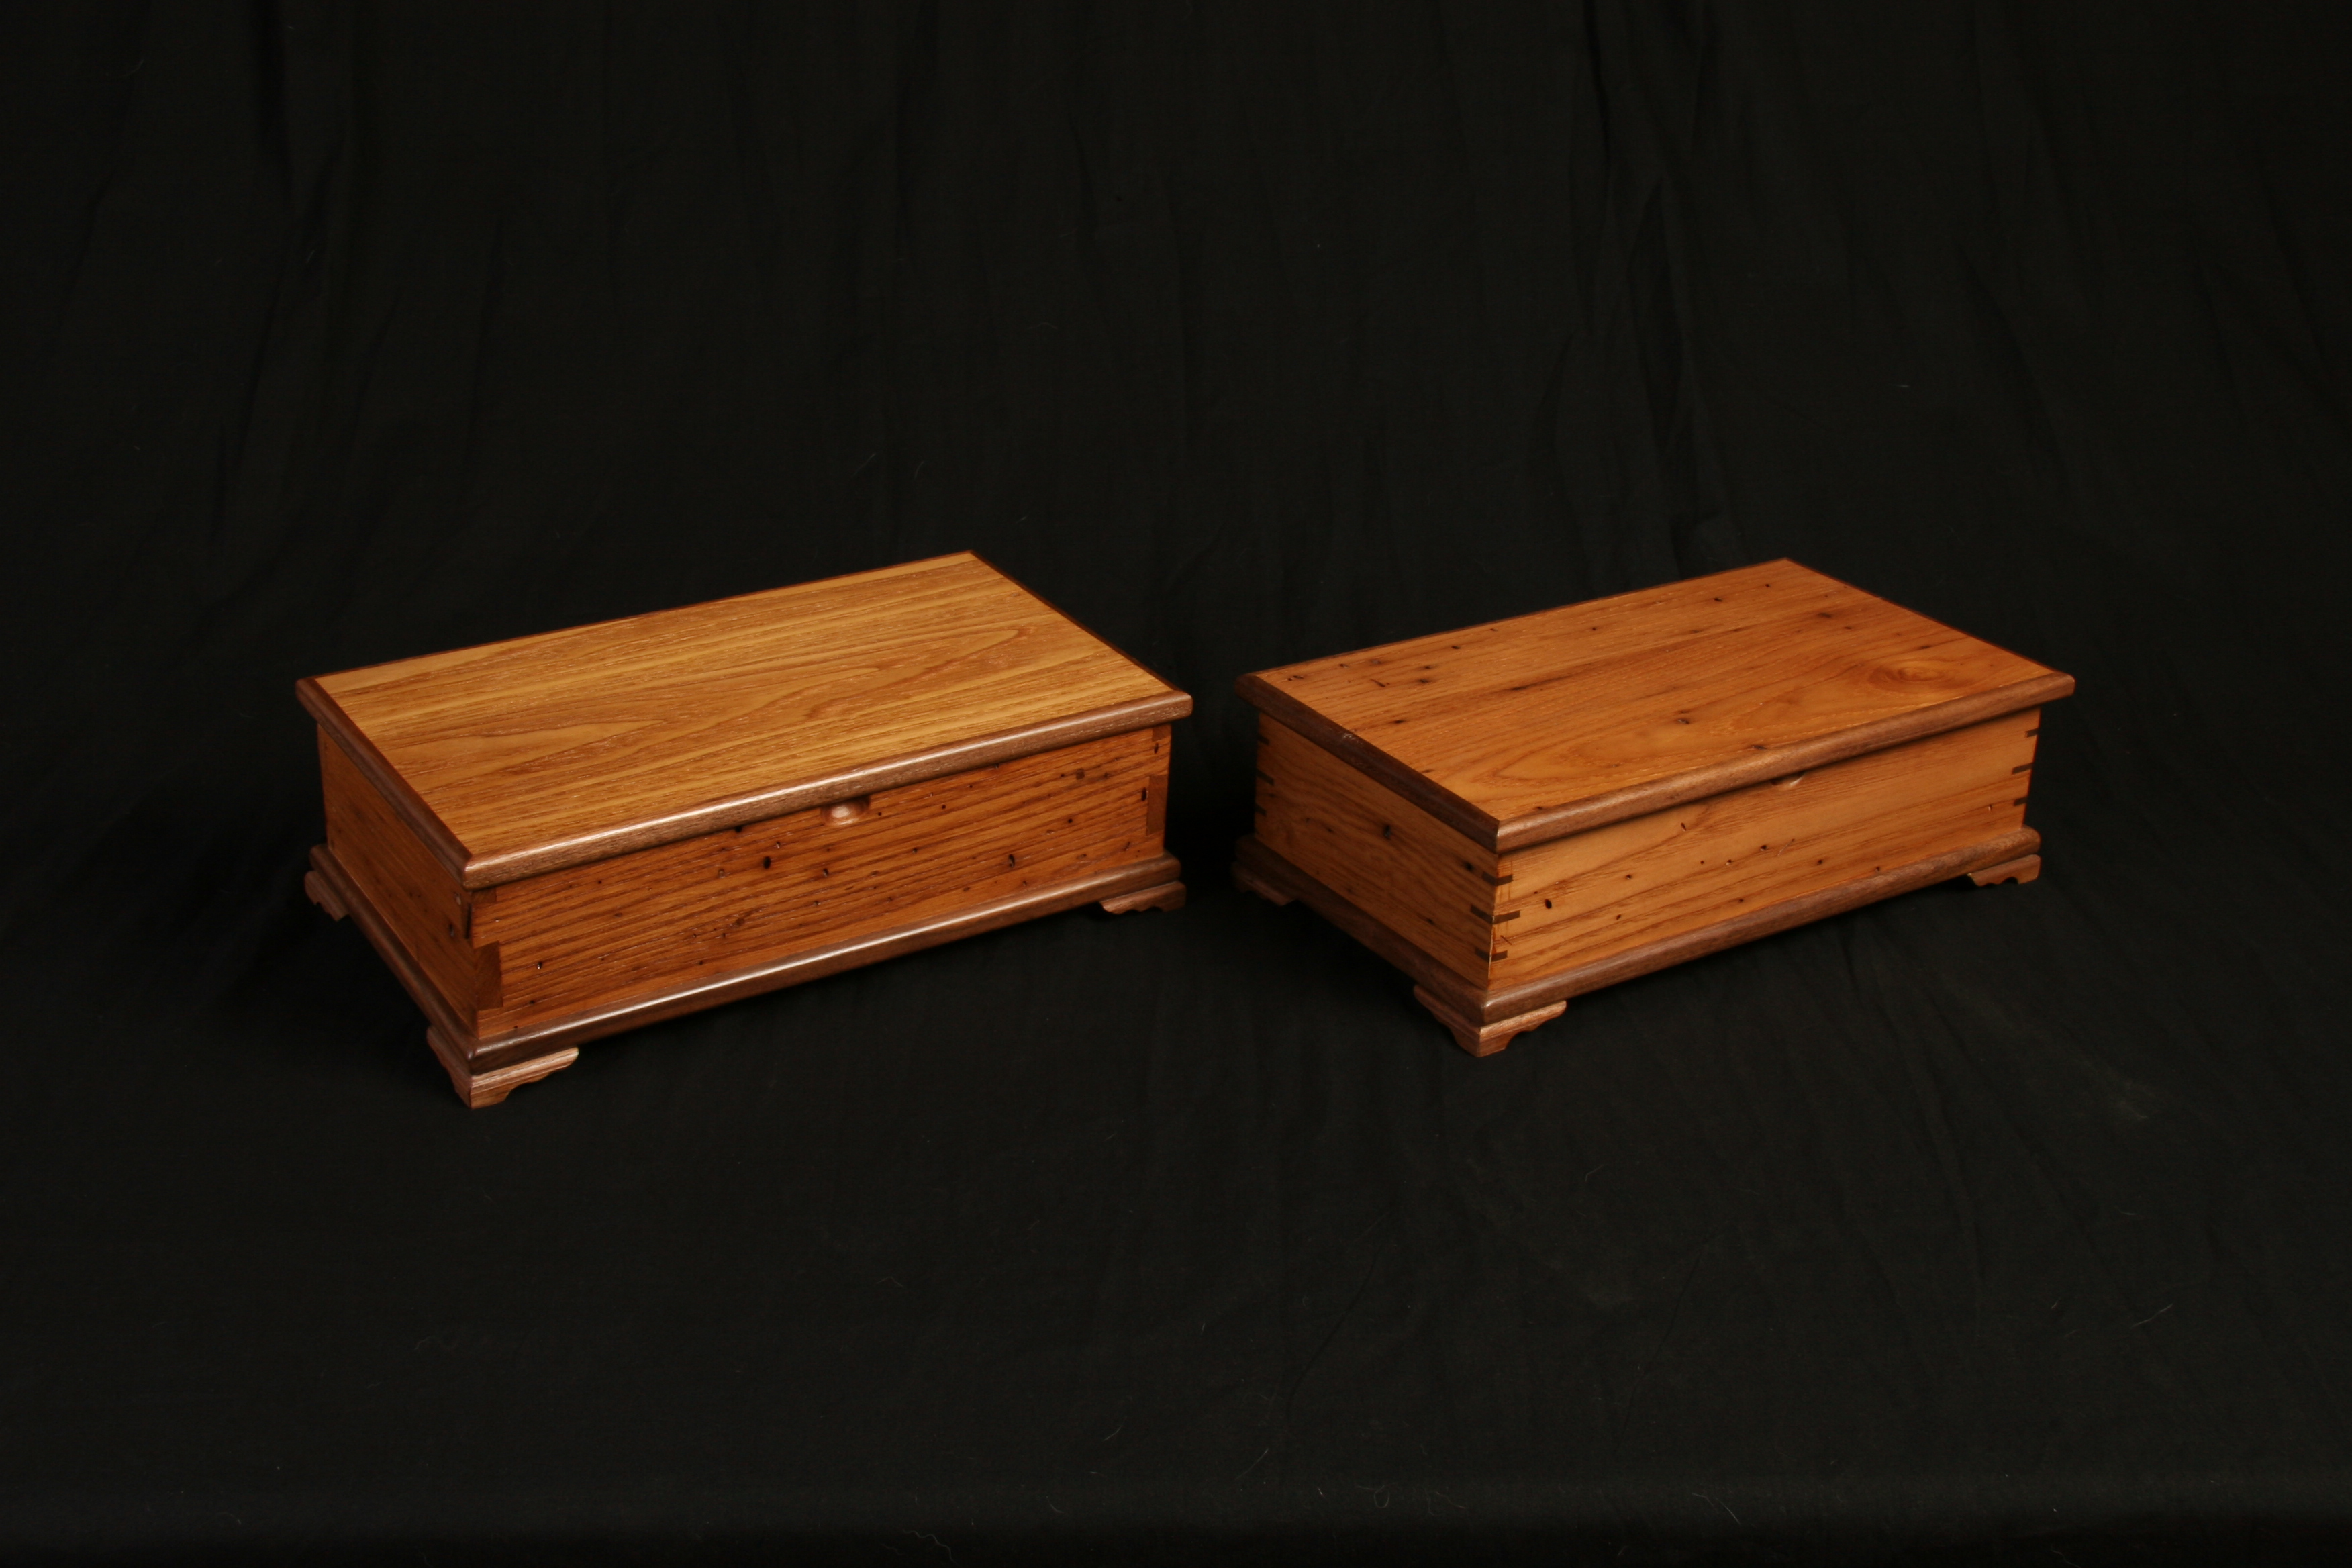 These two box's were designed after two blanket chest i design for them. One is male with dovetails corners and the female has slip feather joinery in the corners.